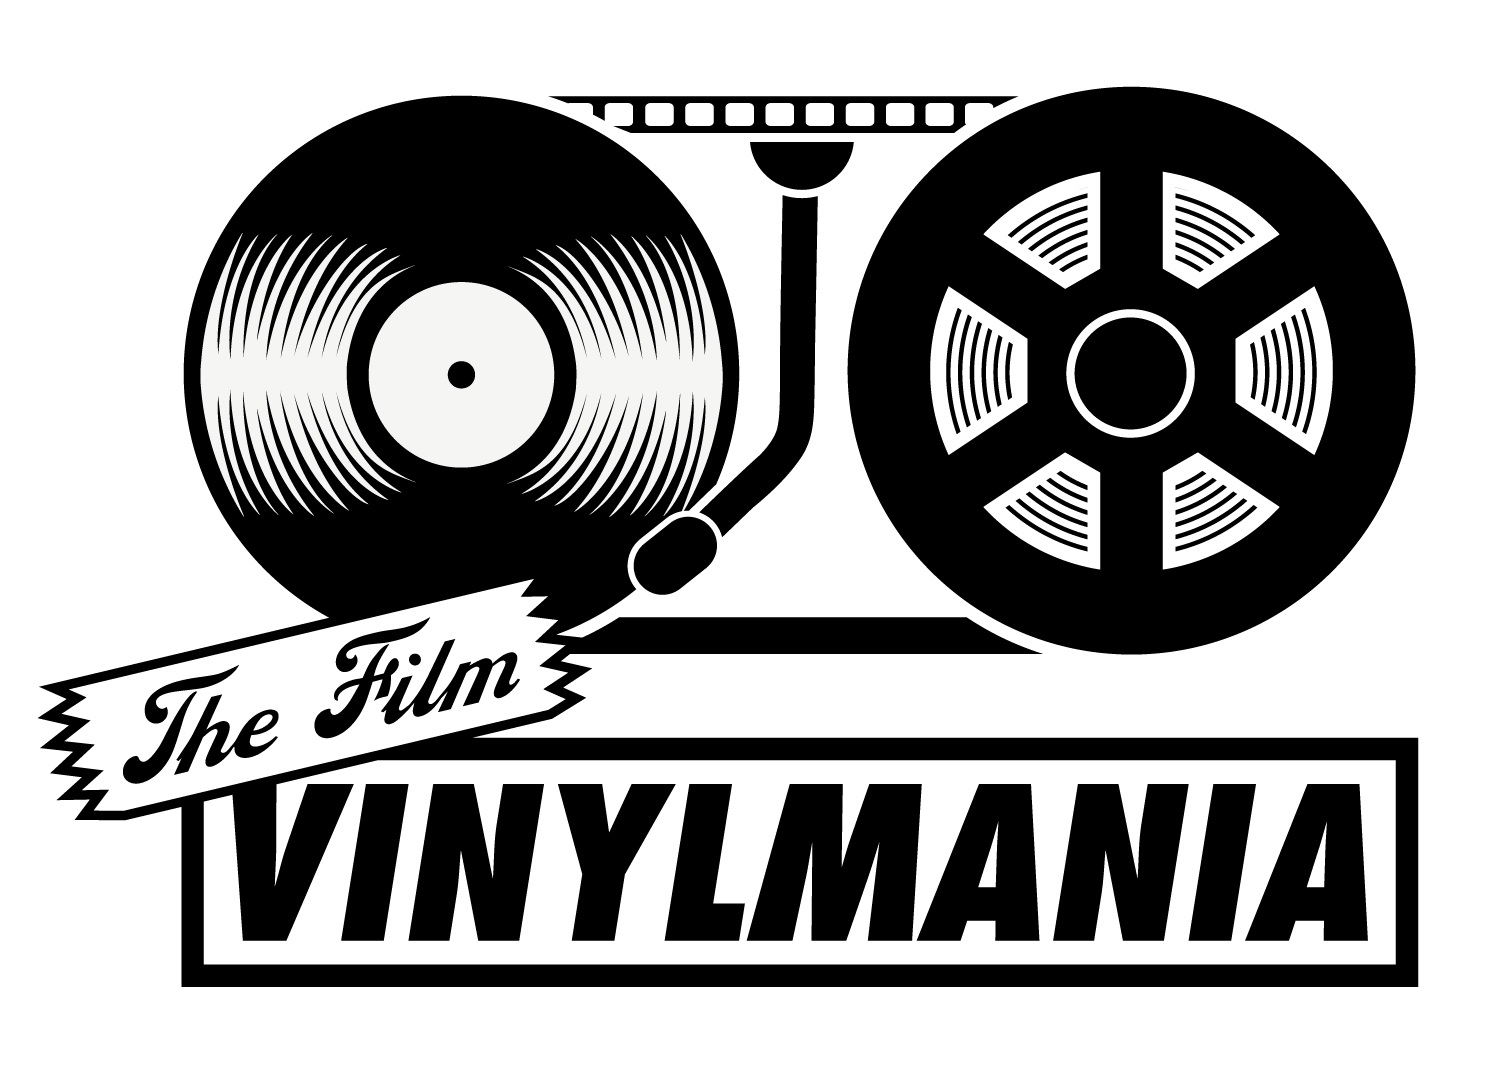 New Documentary To Focus On Vinyl Record Collectors Vvn